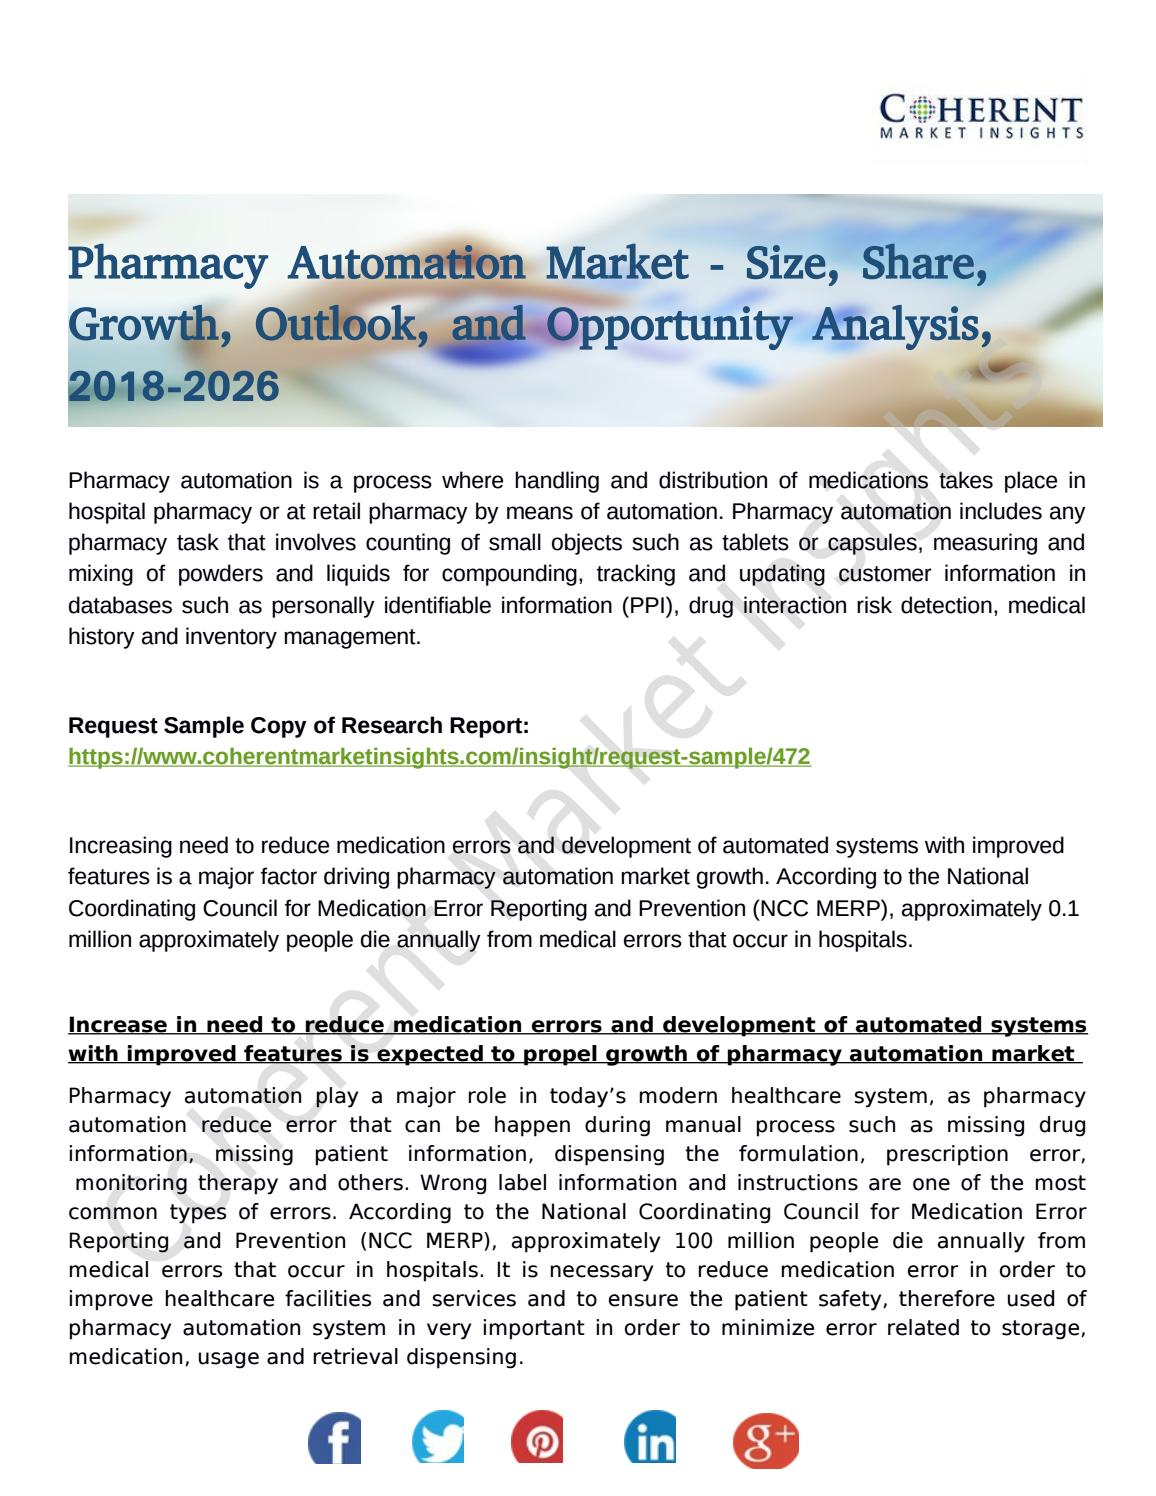 Pharmacy Automation Market Foreseen to Grow Exponentially